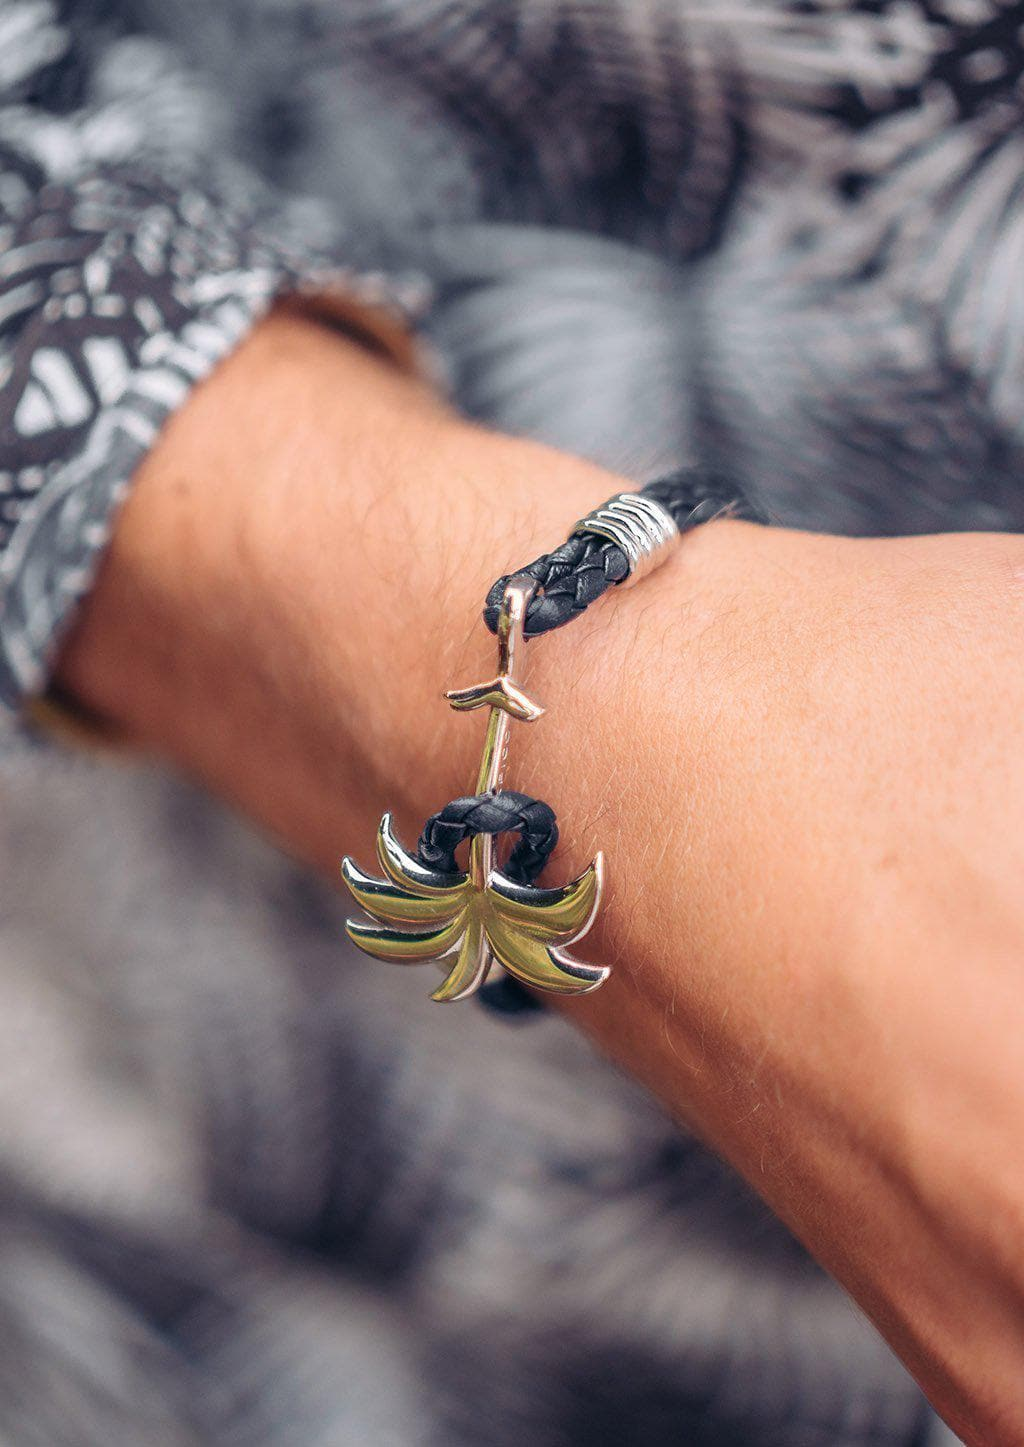 Twilight Silver - Palm anchor bracelet with black leather. On male models arm.